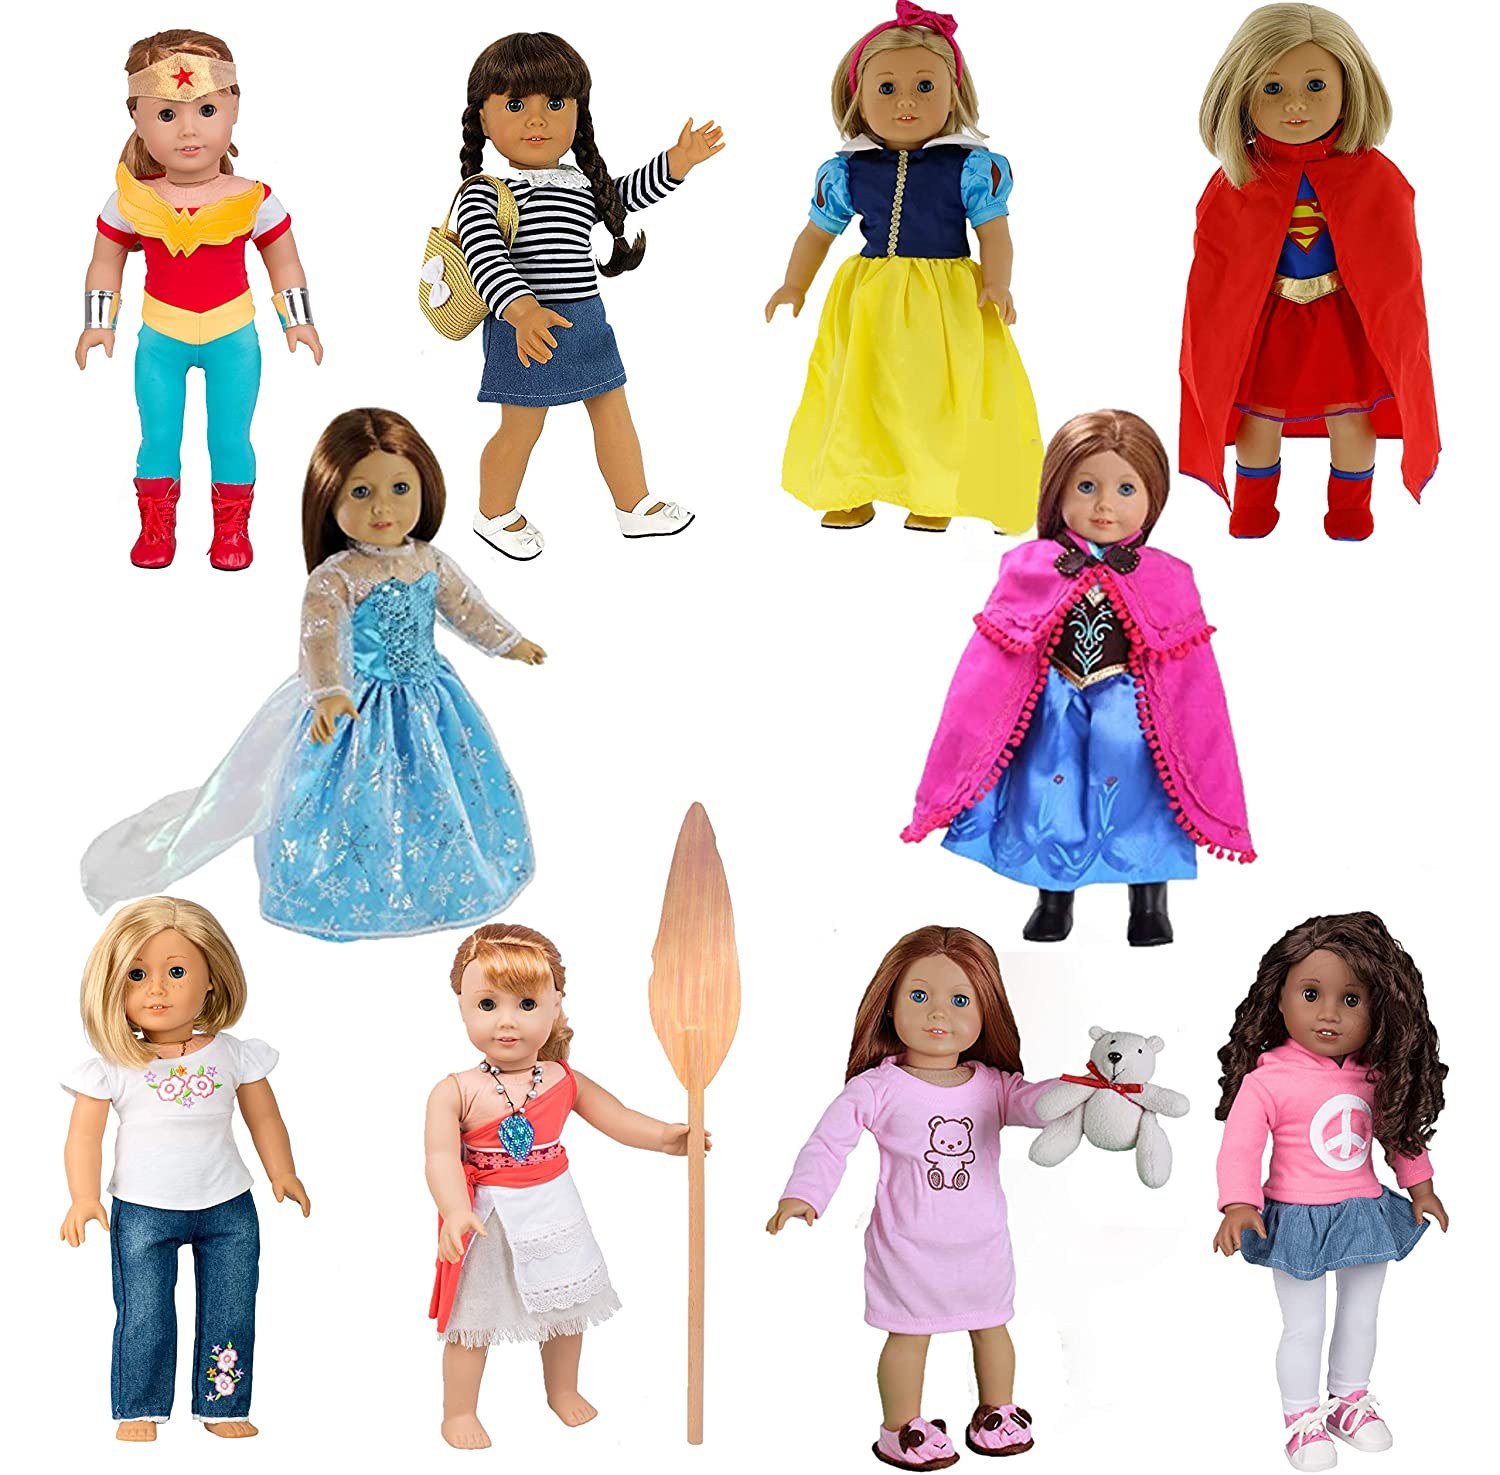 Over 30 Pcs Dress Along Dolly 10 Unique Outfits Variety Pack for American Girl and Other 18 Inch Dolls Shoes and Accessories Included